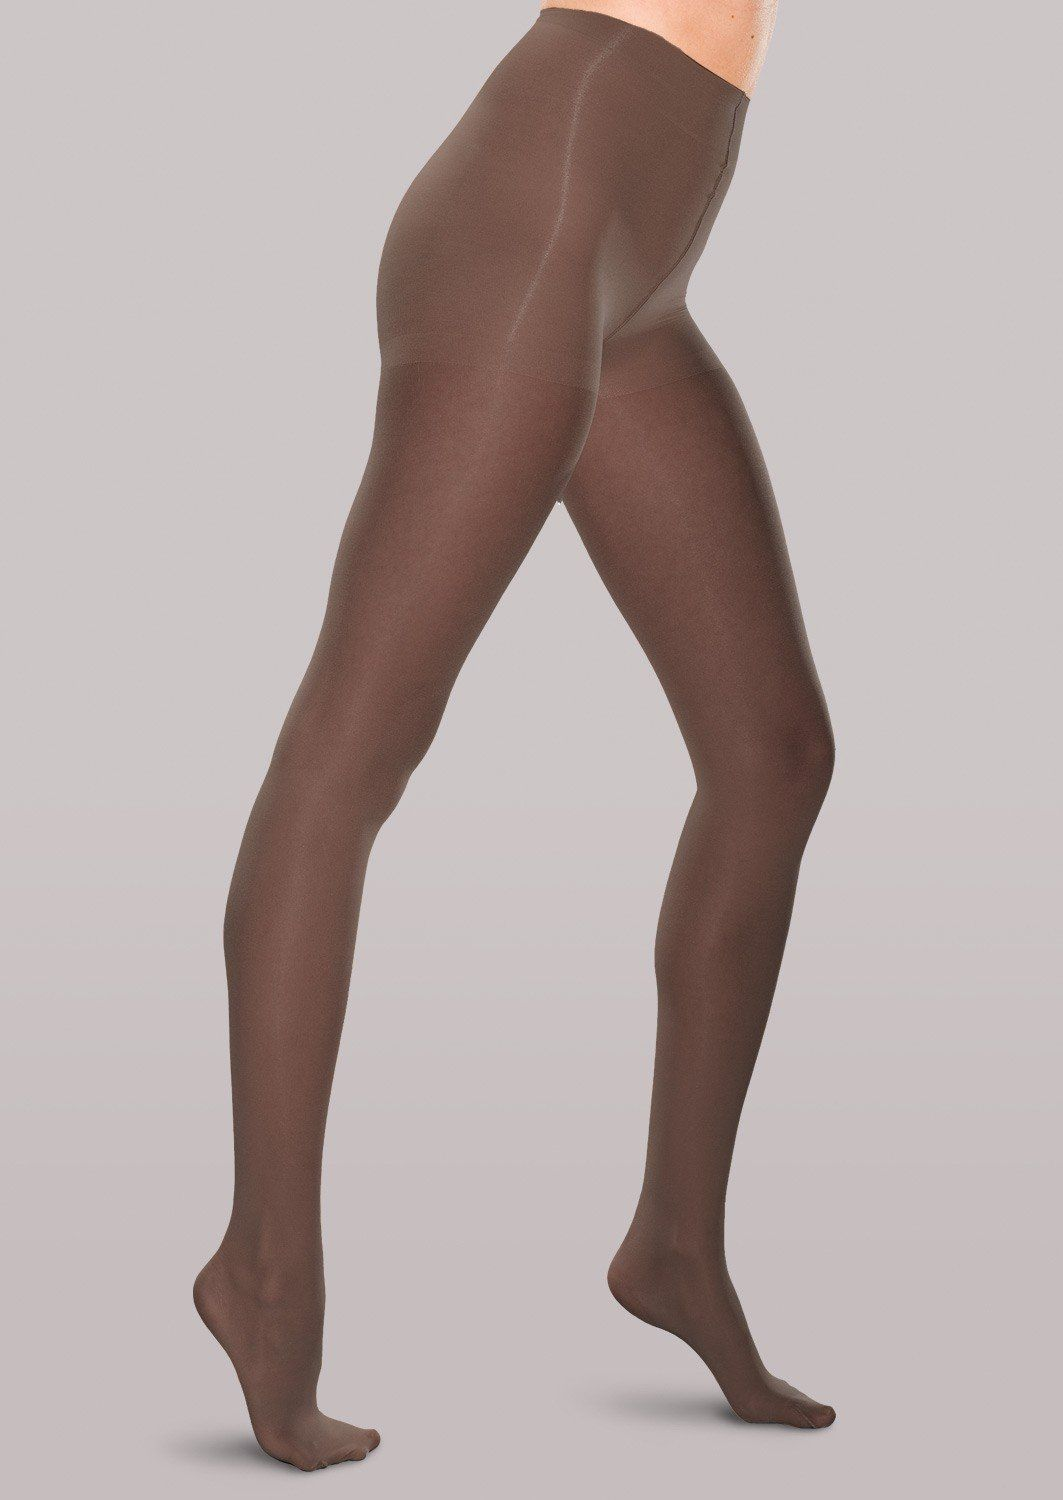 Where can i buy diabetic pantyhose